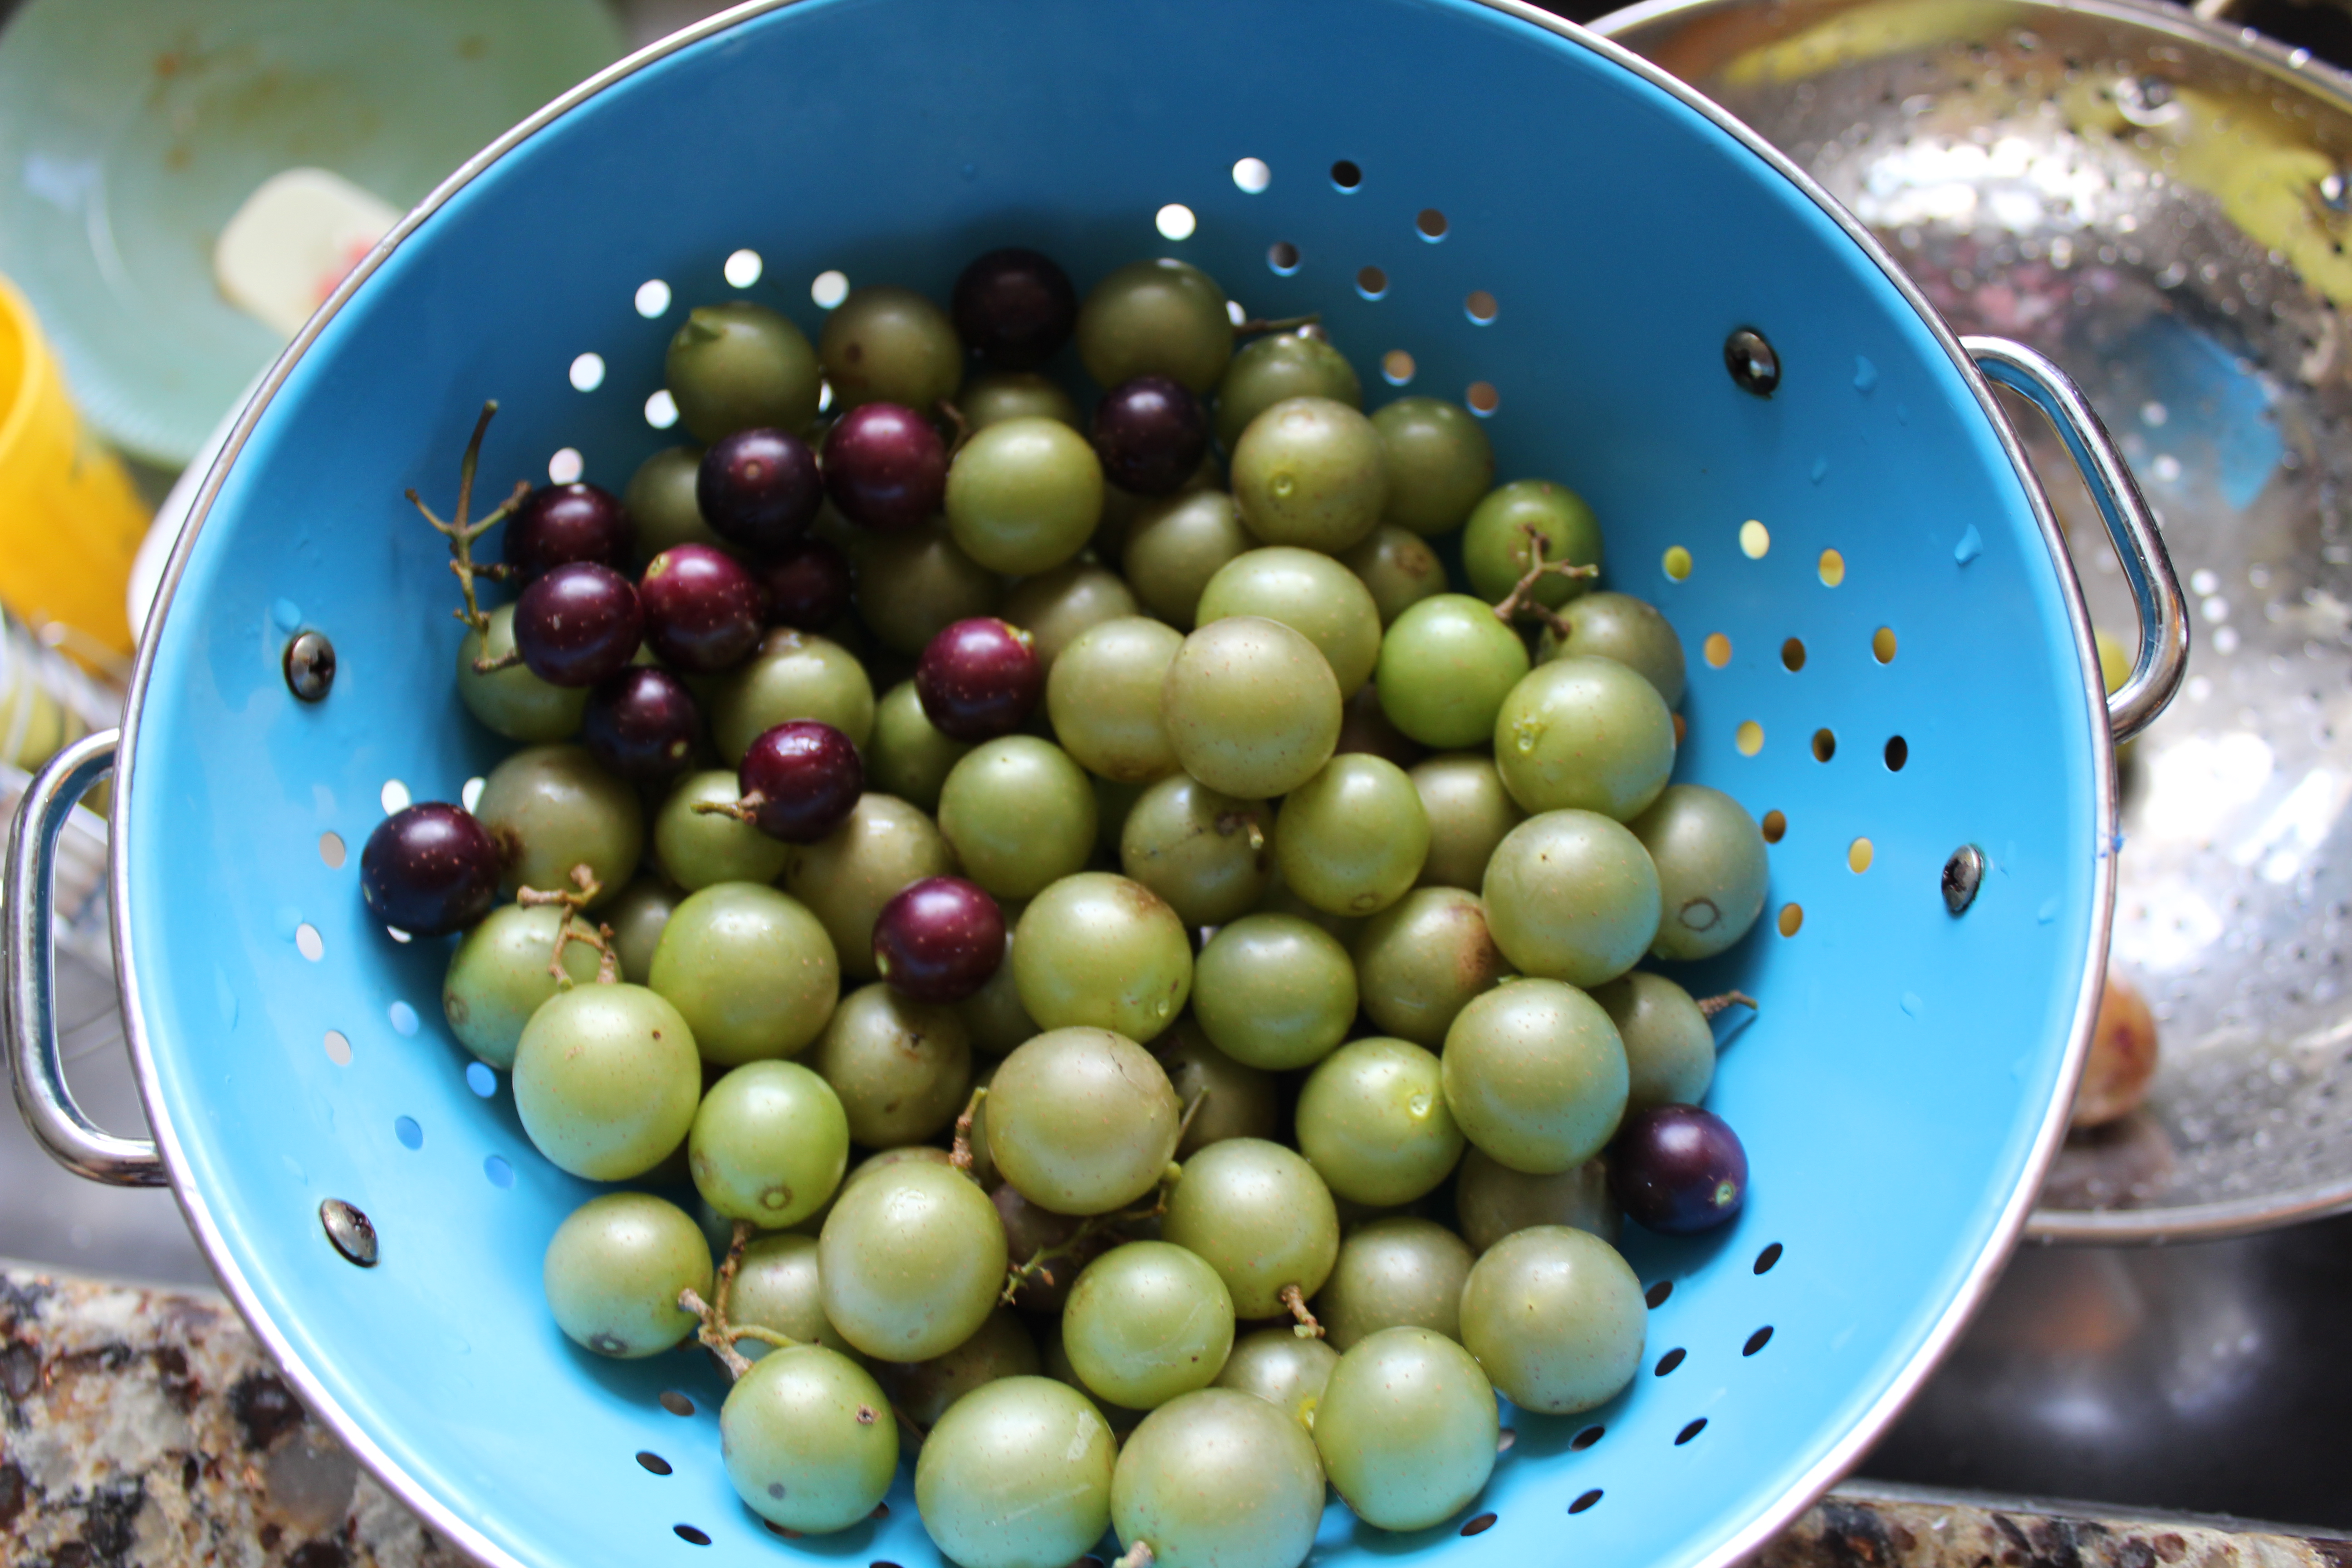 Muscadines are grapes that are native to the Southern US. Scuppernongs are the green/bronze variety of Muscadines pictured here.